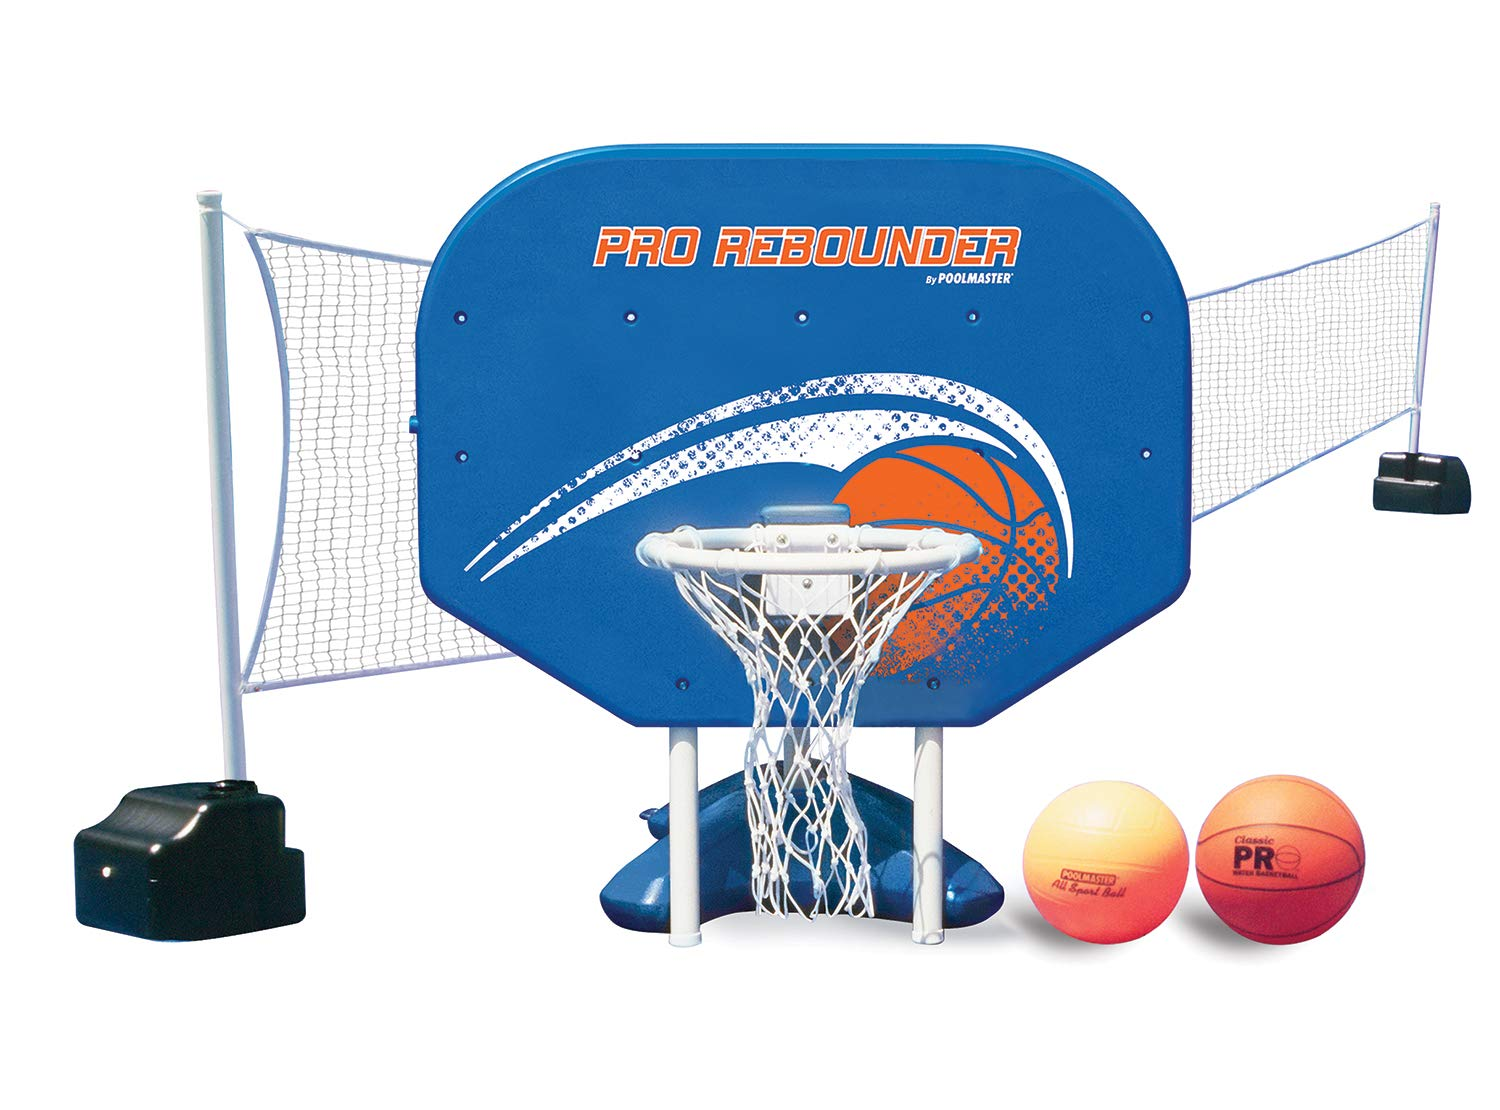 Poolmaster Pro Rebounder Swimming Pool Basketball and Volleyball Game Combo, In-Ground Pool by Poolmaster